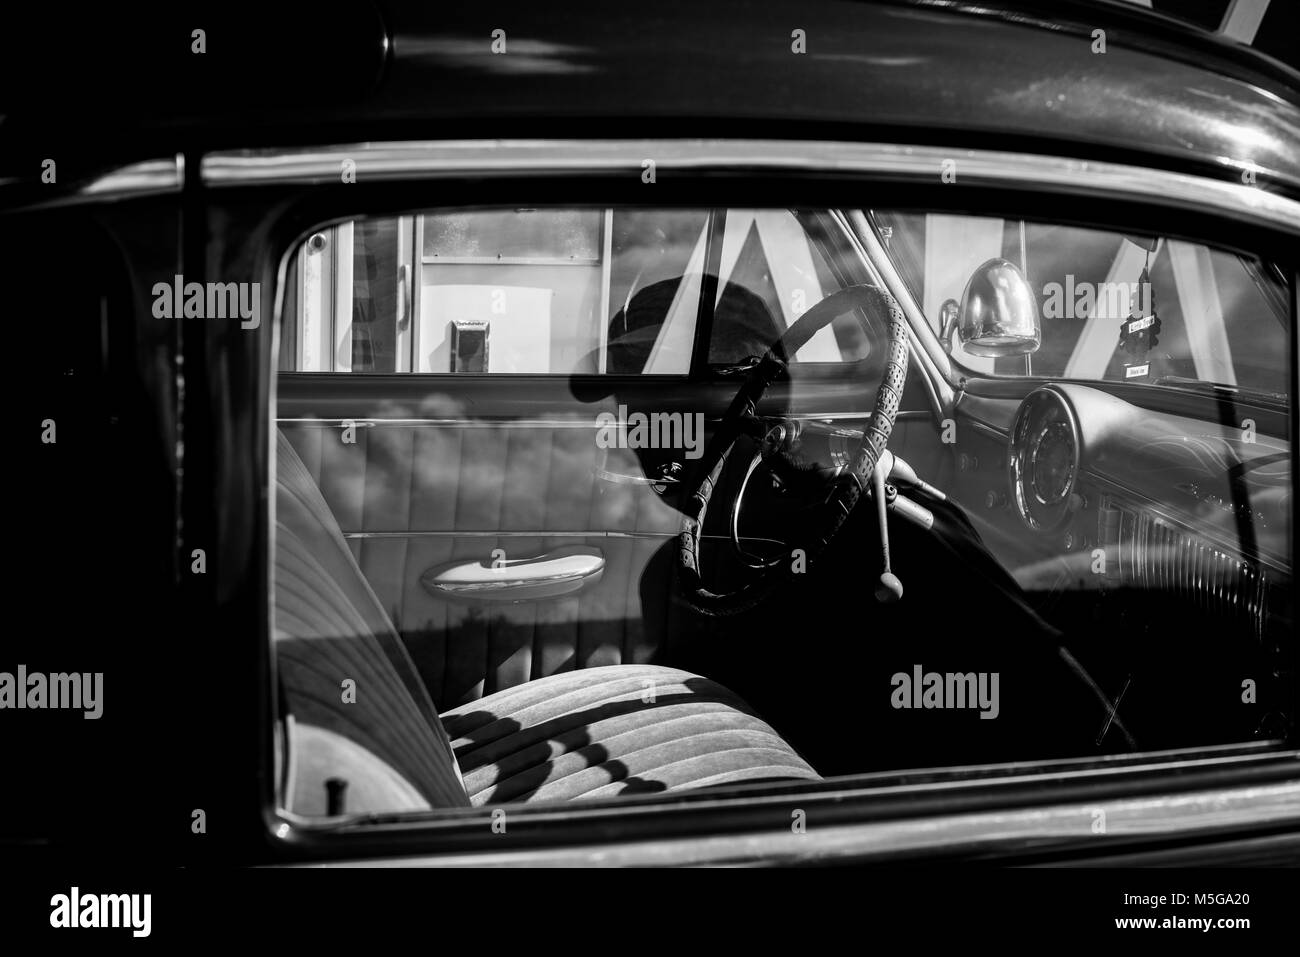 The monochrome  reflection of a man in a vintage Chevy car. - Stock Image